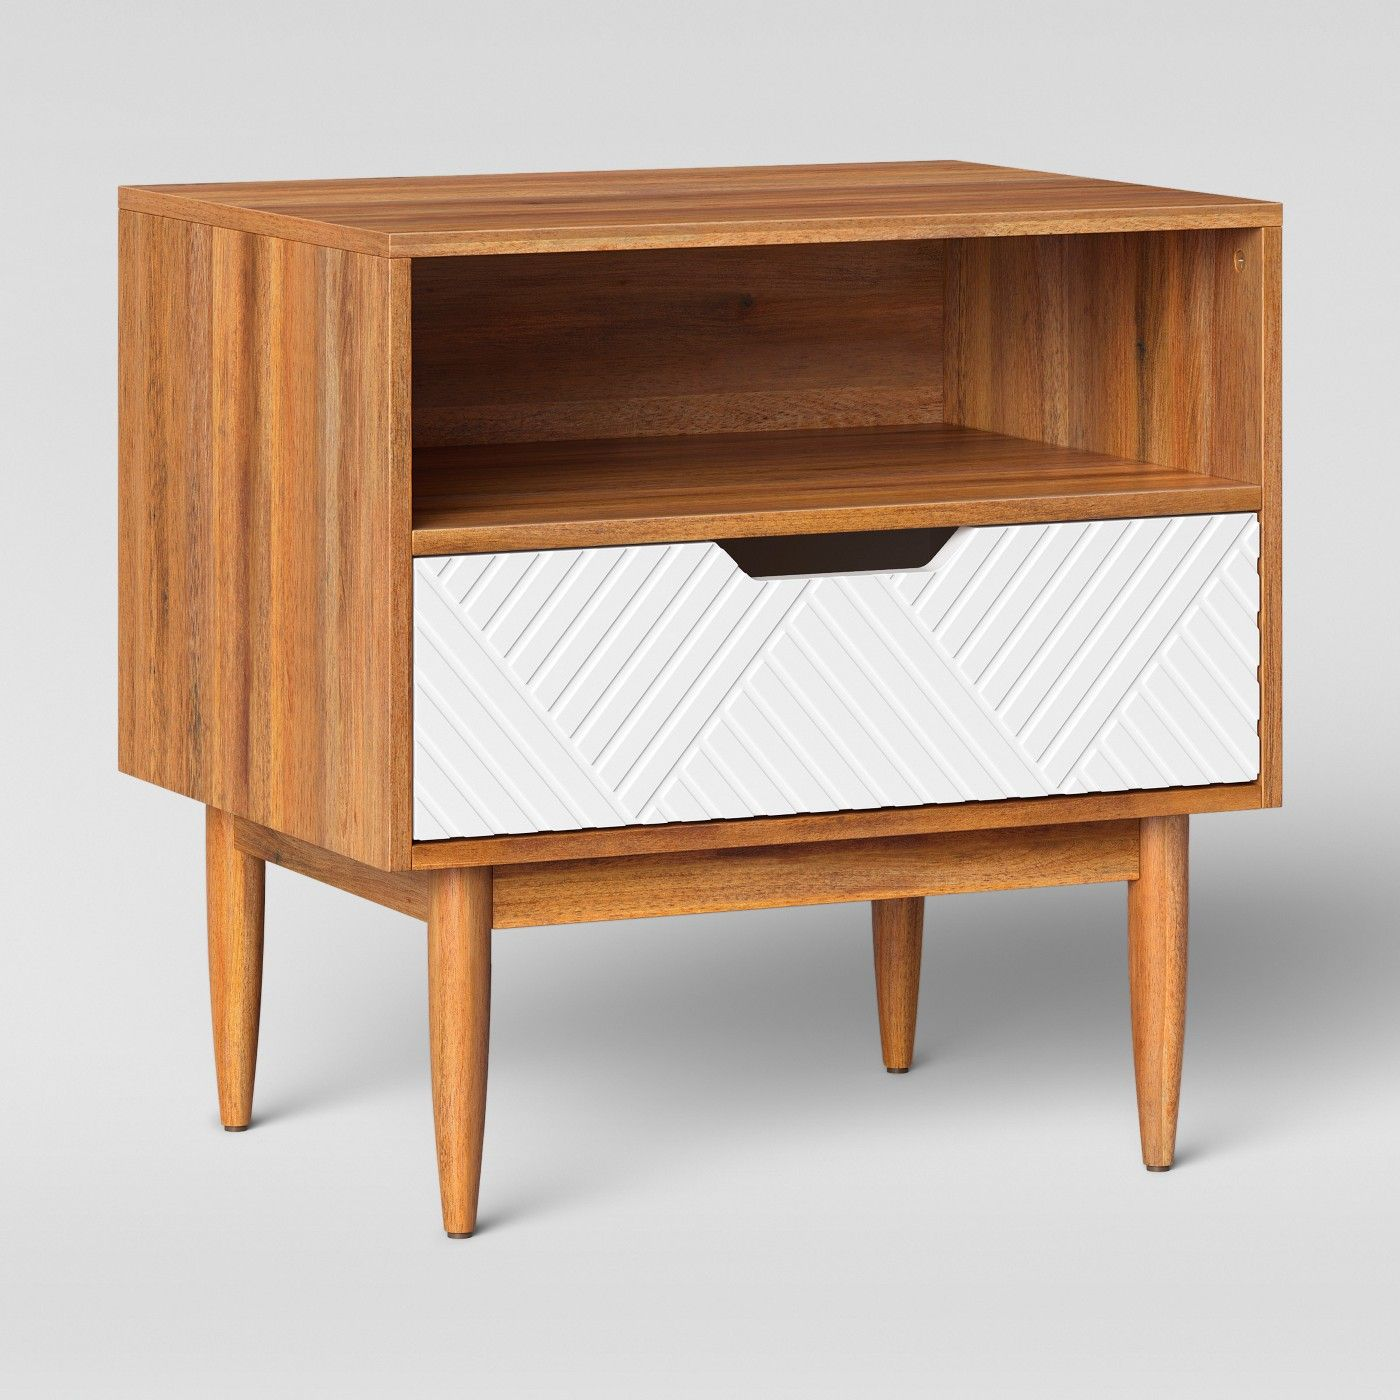 touraco nightstand white brown opalhouse interior design timor wood trunk accent table runner small short solid farmhouse outdoor side extra wide door threshold bars montrez gold